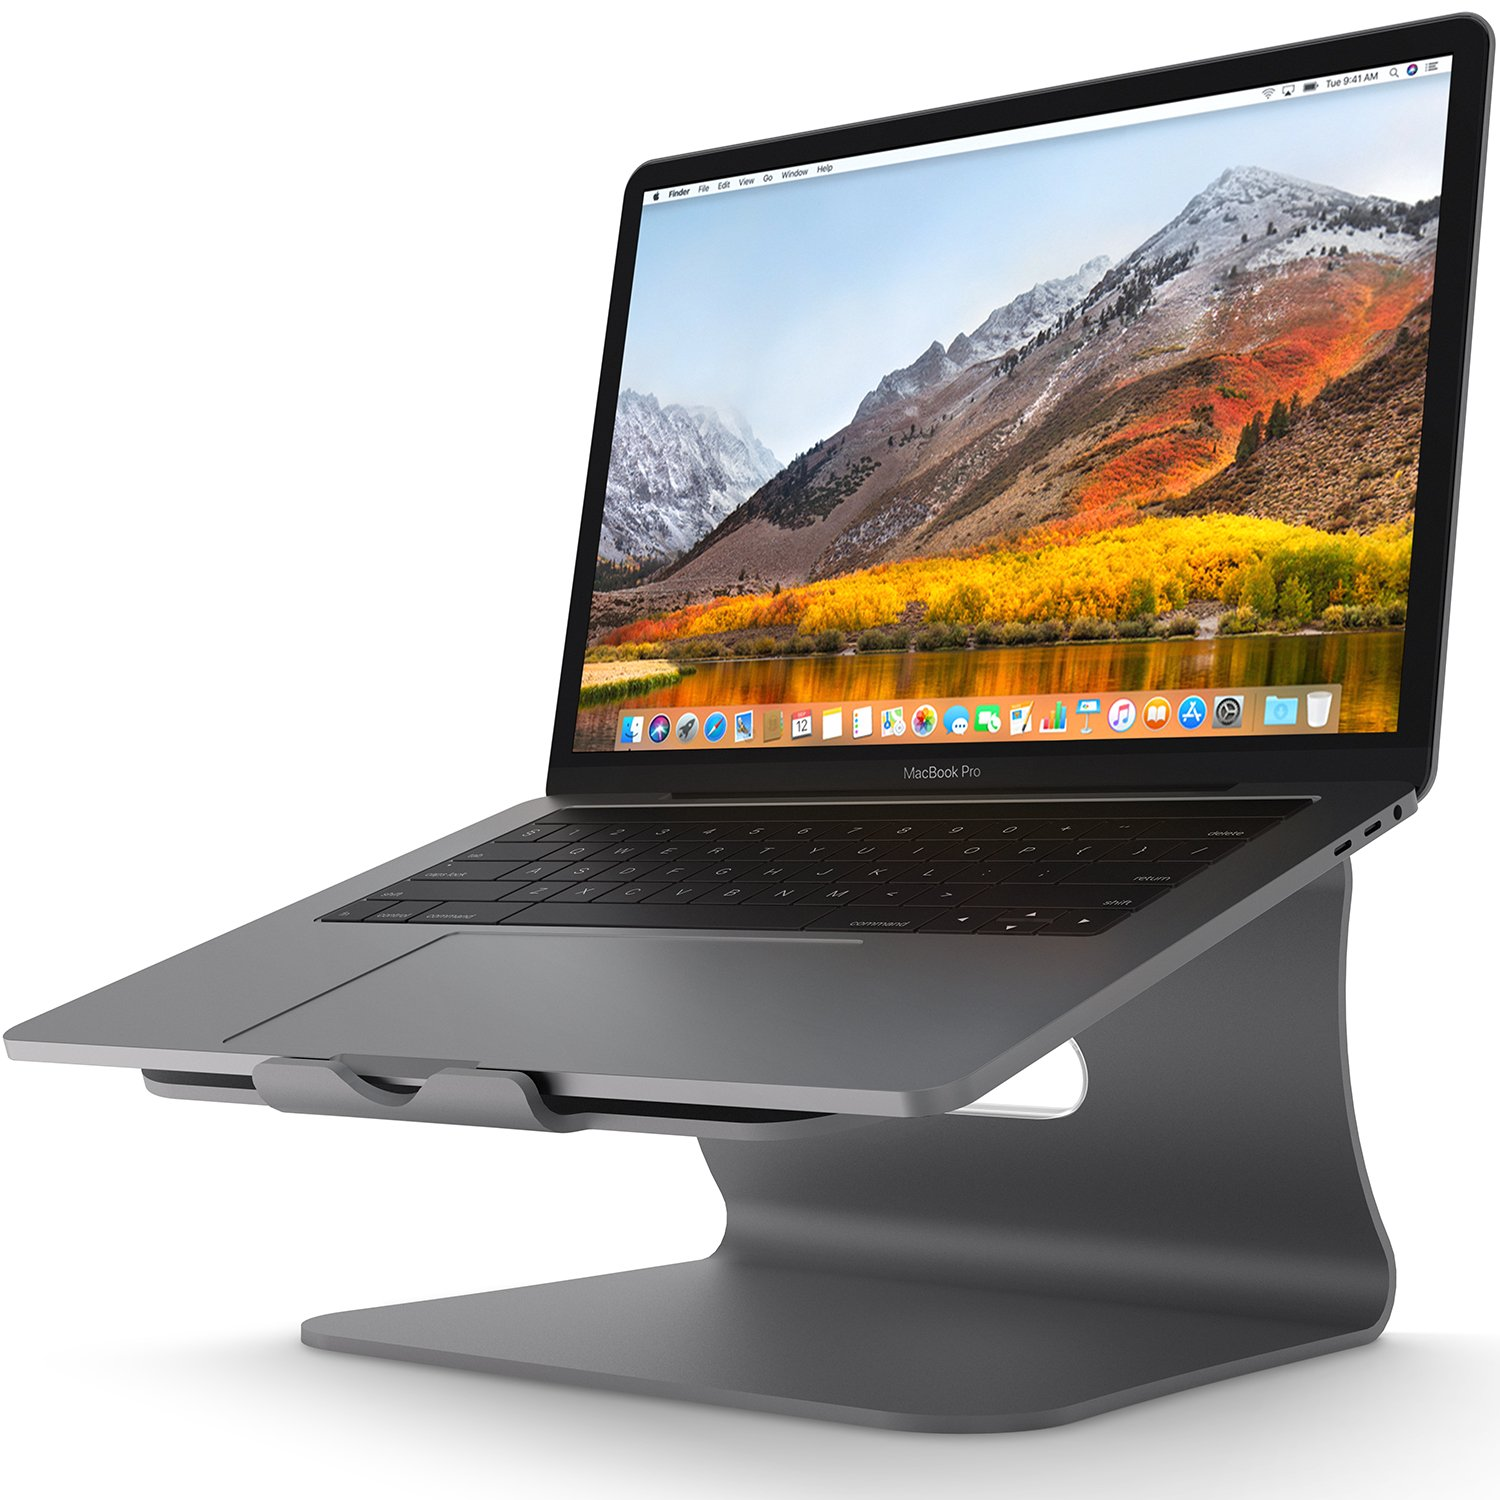 Laptop Stand - Bestand Aluminum Cooling Computer Stand: [Update Version] Stand, Holder for Apple MacBook Air, MacBook Pro, All Notebooks, Grey (Patented) lo2ggggrey